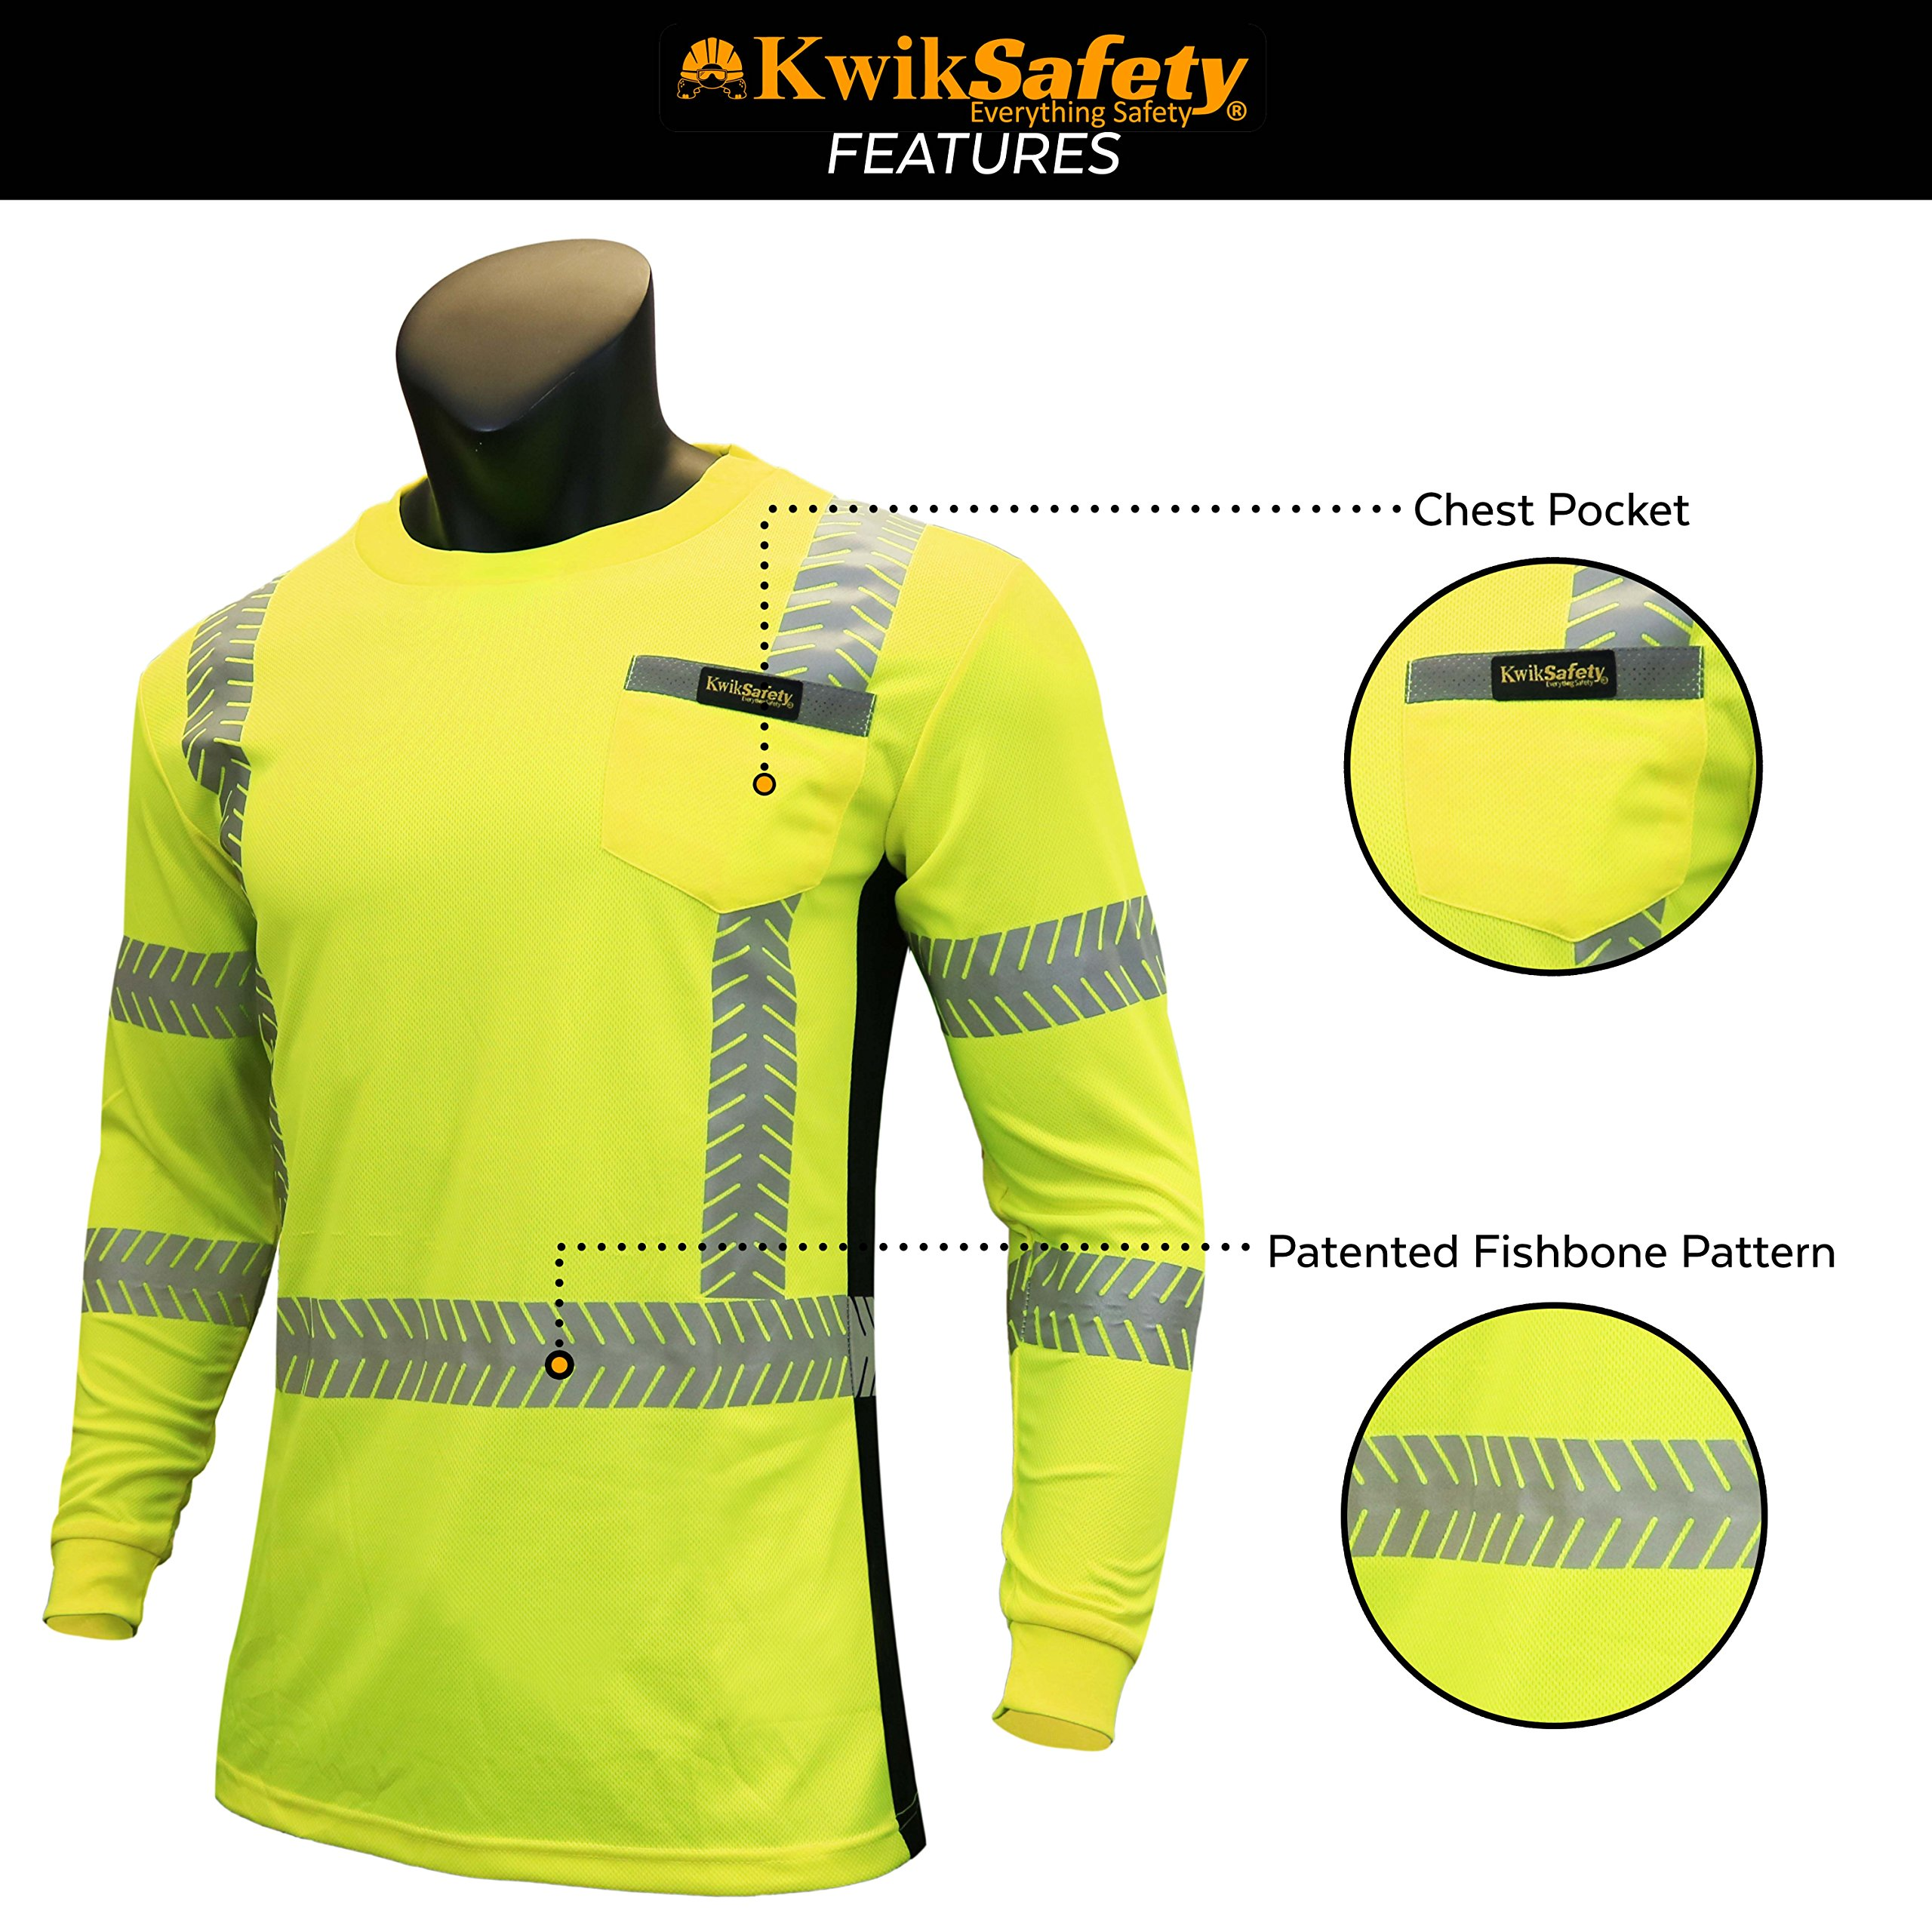 KwikSafety (Charlotte, NC) RENAISSANCE MAN (with POCKET) Class 3 ANSI High Visibility Safety Shirt Fishbone Reflective Tape Construction Security Hi Vis Clothing Men Long Sleeve Yellow Black XL by KwikSafety (Image #5)